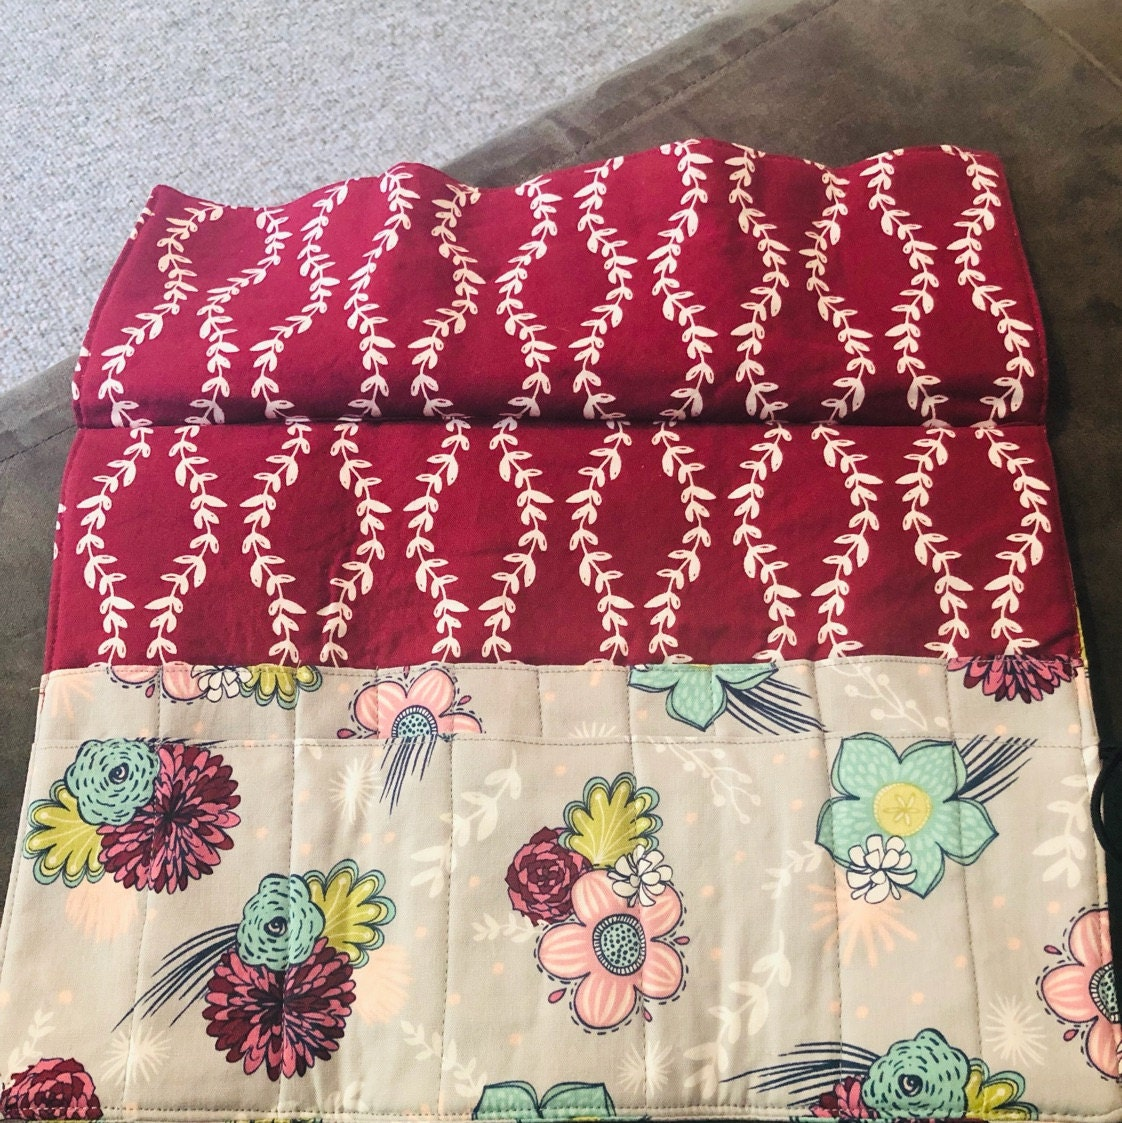 Karina Baron added a photo of their purchase